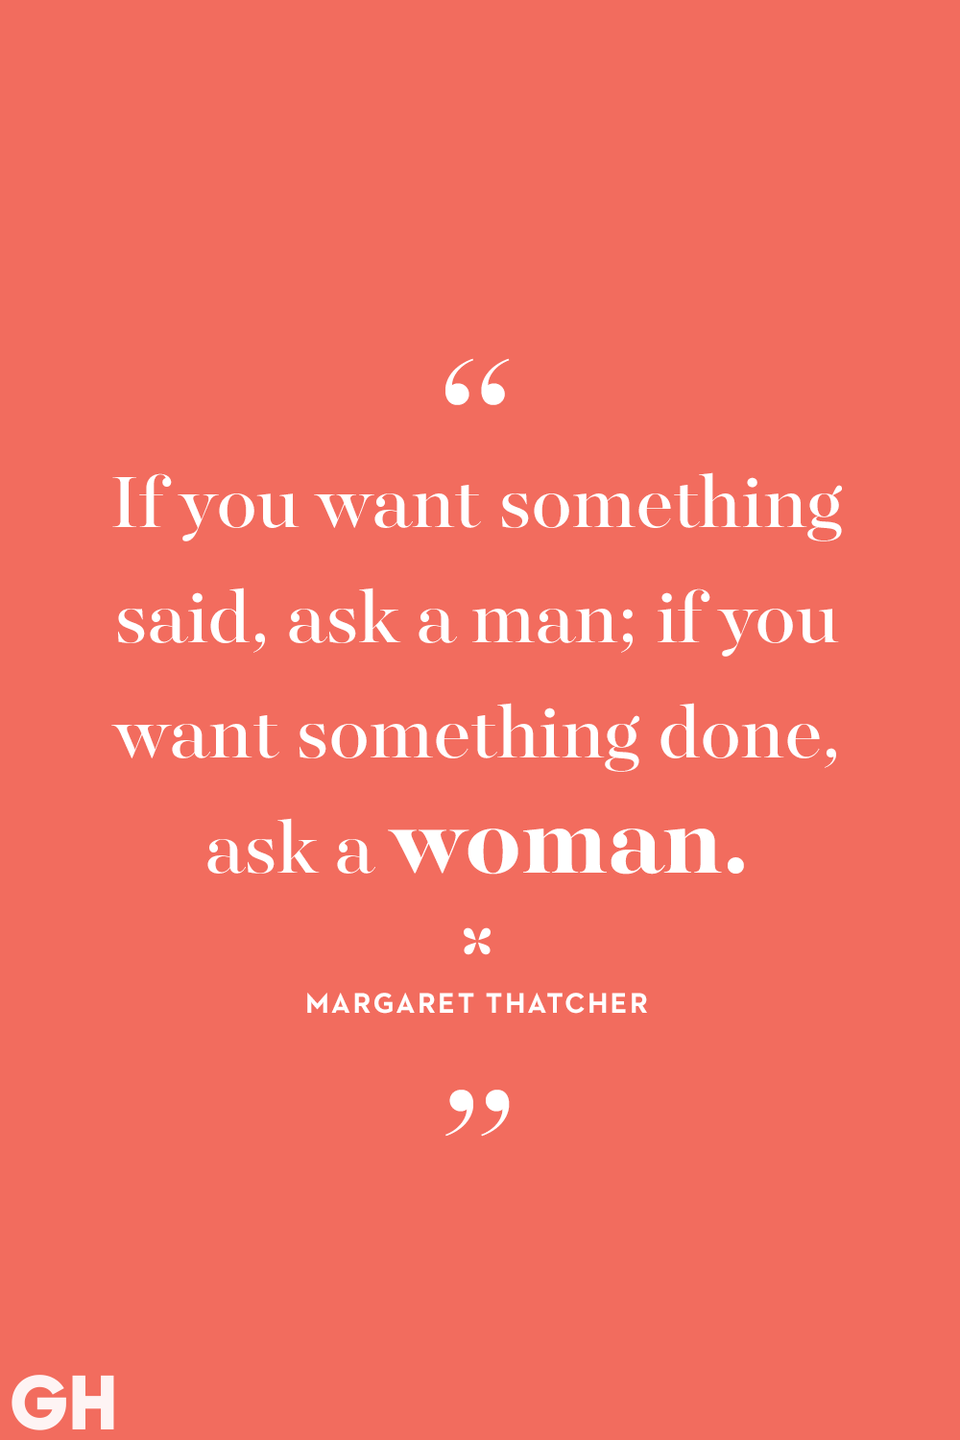 <p>If you want something said, ask a man; if you want something done, ask a woman.</p>